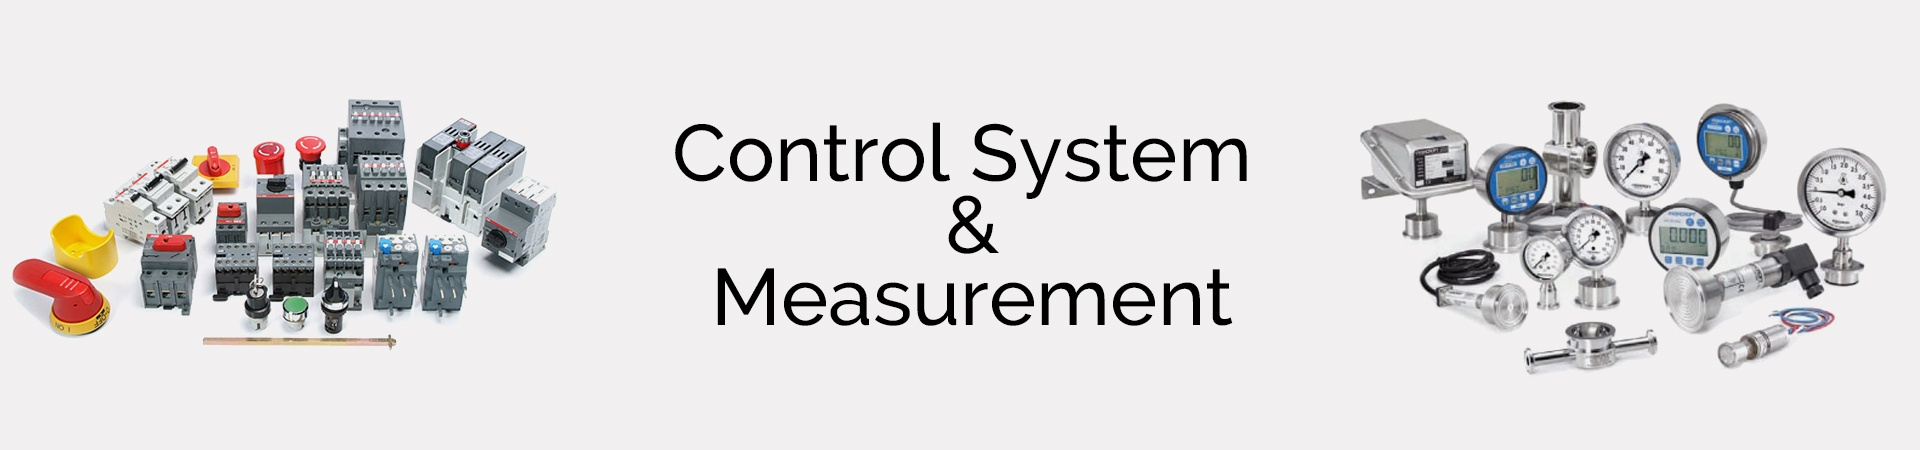 Control system & measurement